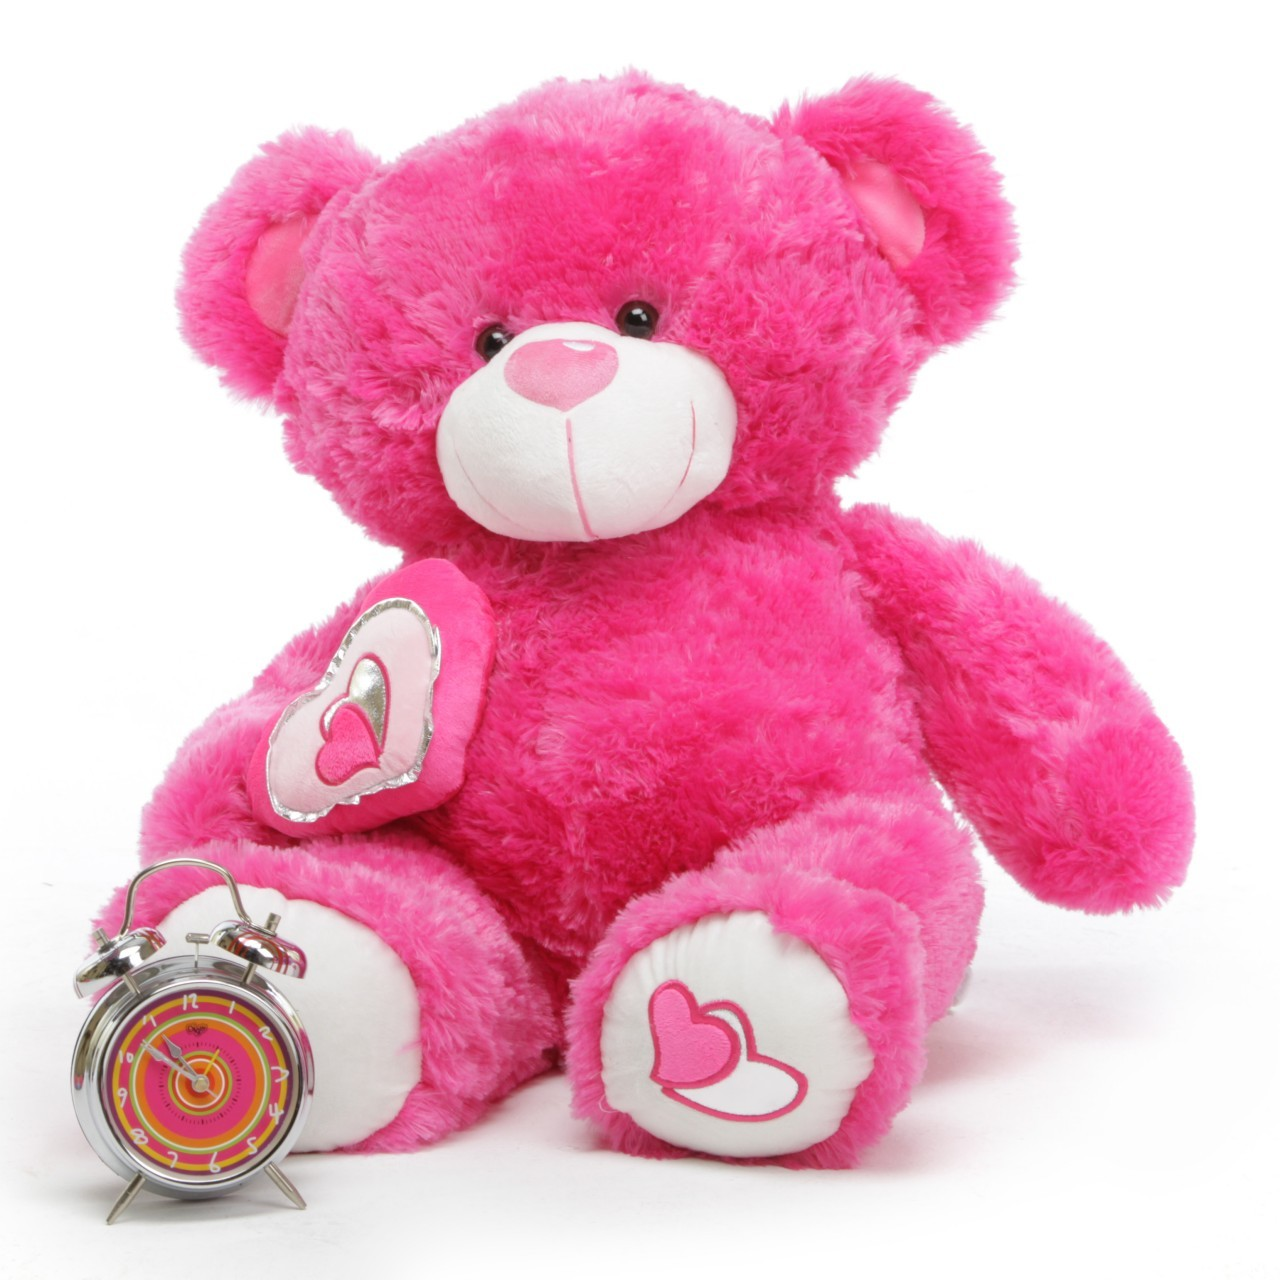 goa u0027s electoral officers want to give women voters teddy bears